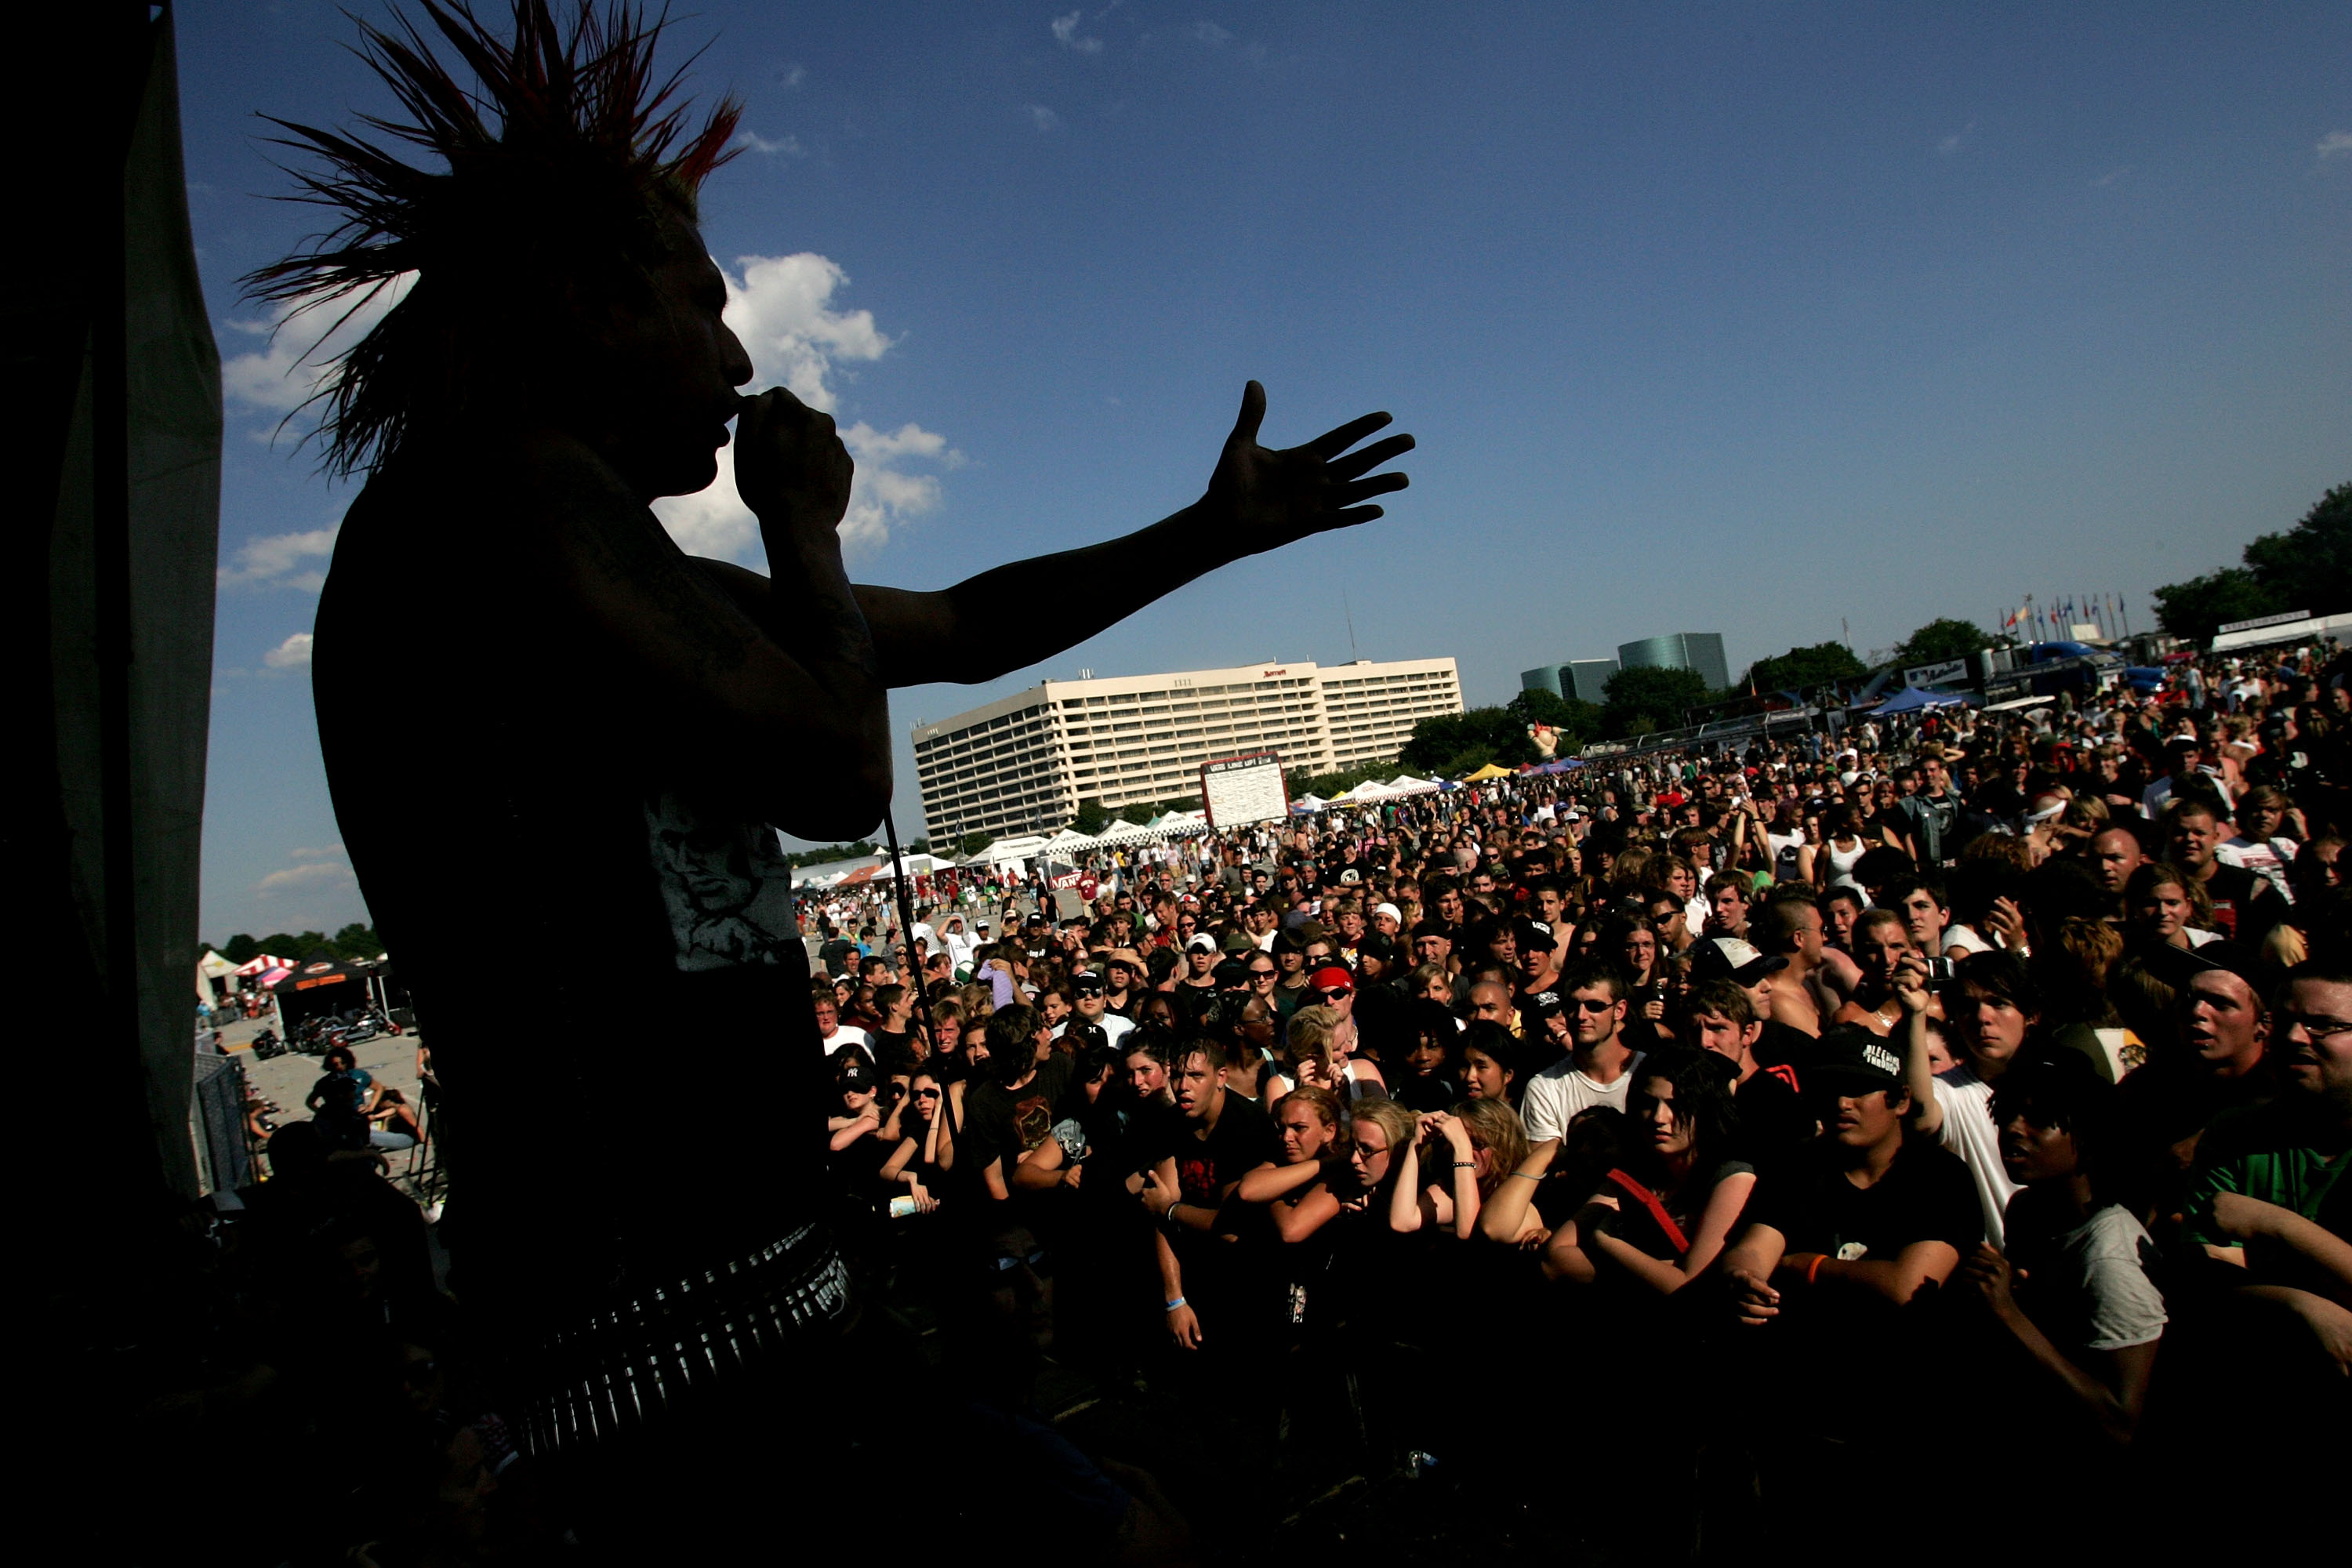 Jorge Rodrigo Herrera performs with his band The Casualties at Warped Tour 2006 in Uniondale, New York.